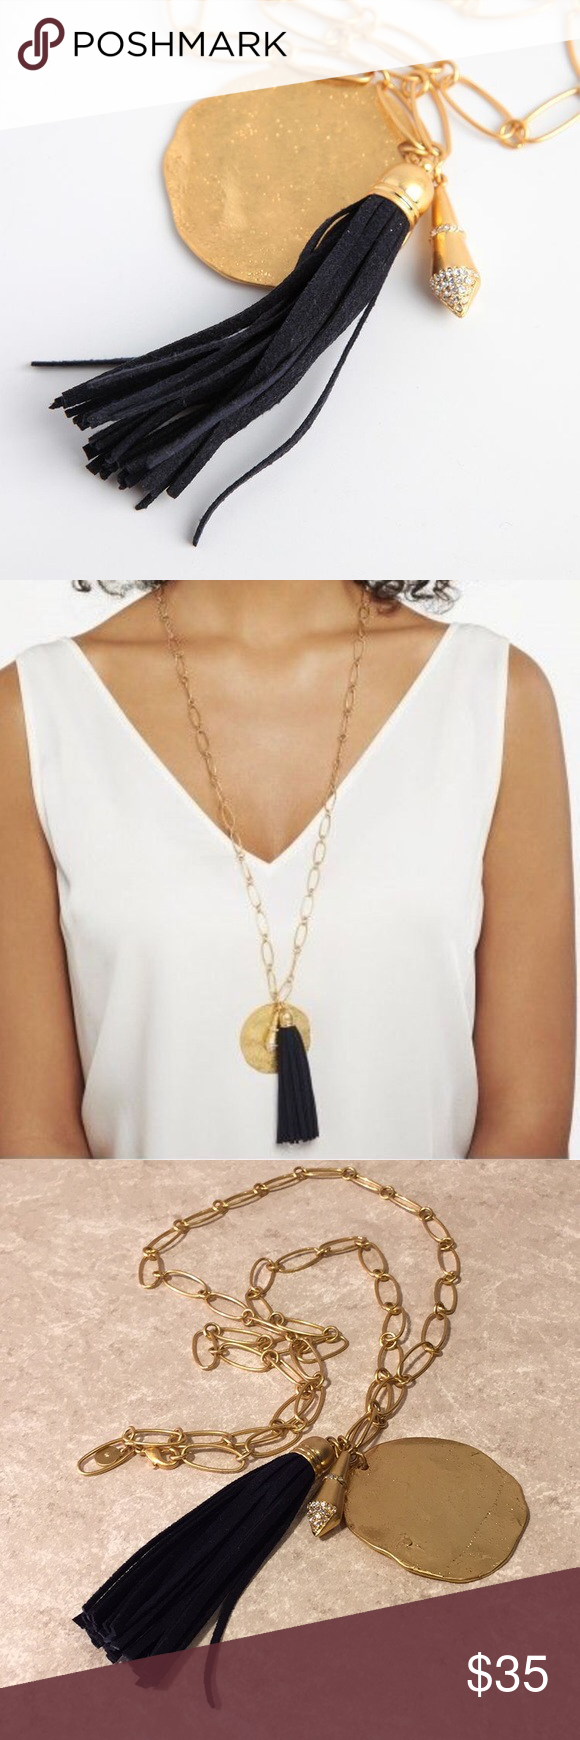 Stella & Dot Carla Tassel Necklace – Gold + Black This is a beautiful and elegant necklace from Stella & Dot, gold chain with pendant and necklace tassel. See pictures for details. Good condition minor wear. Be sure and check out other items in closet and bundle to receive discounts. Stella & Dot Jewelry Necklaces